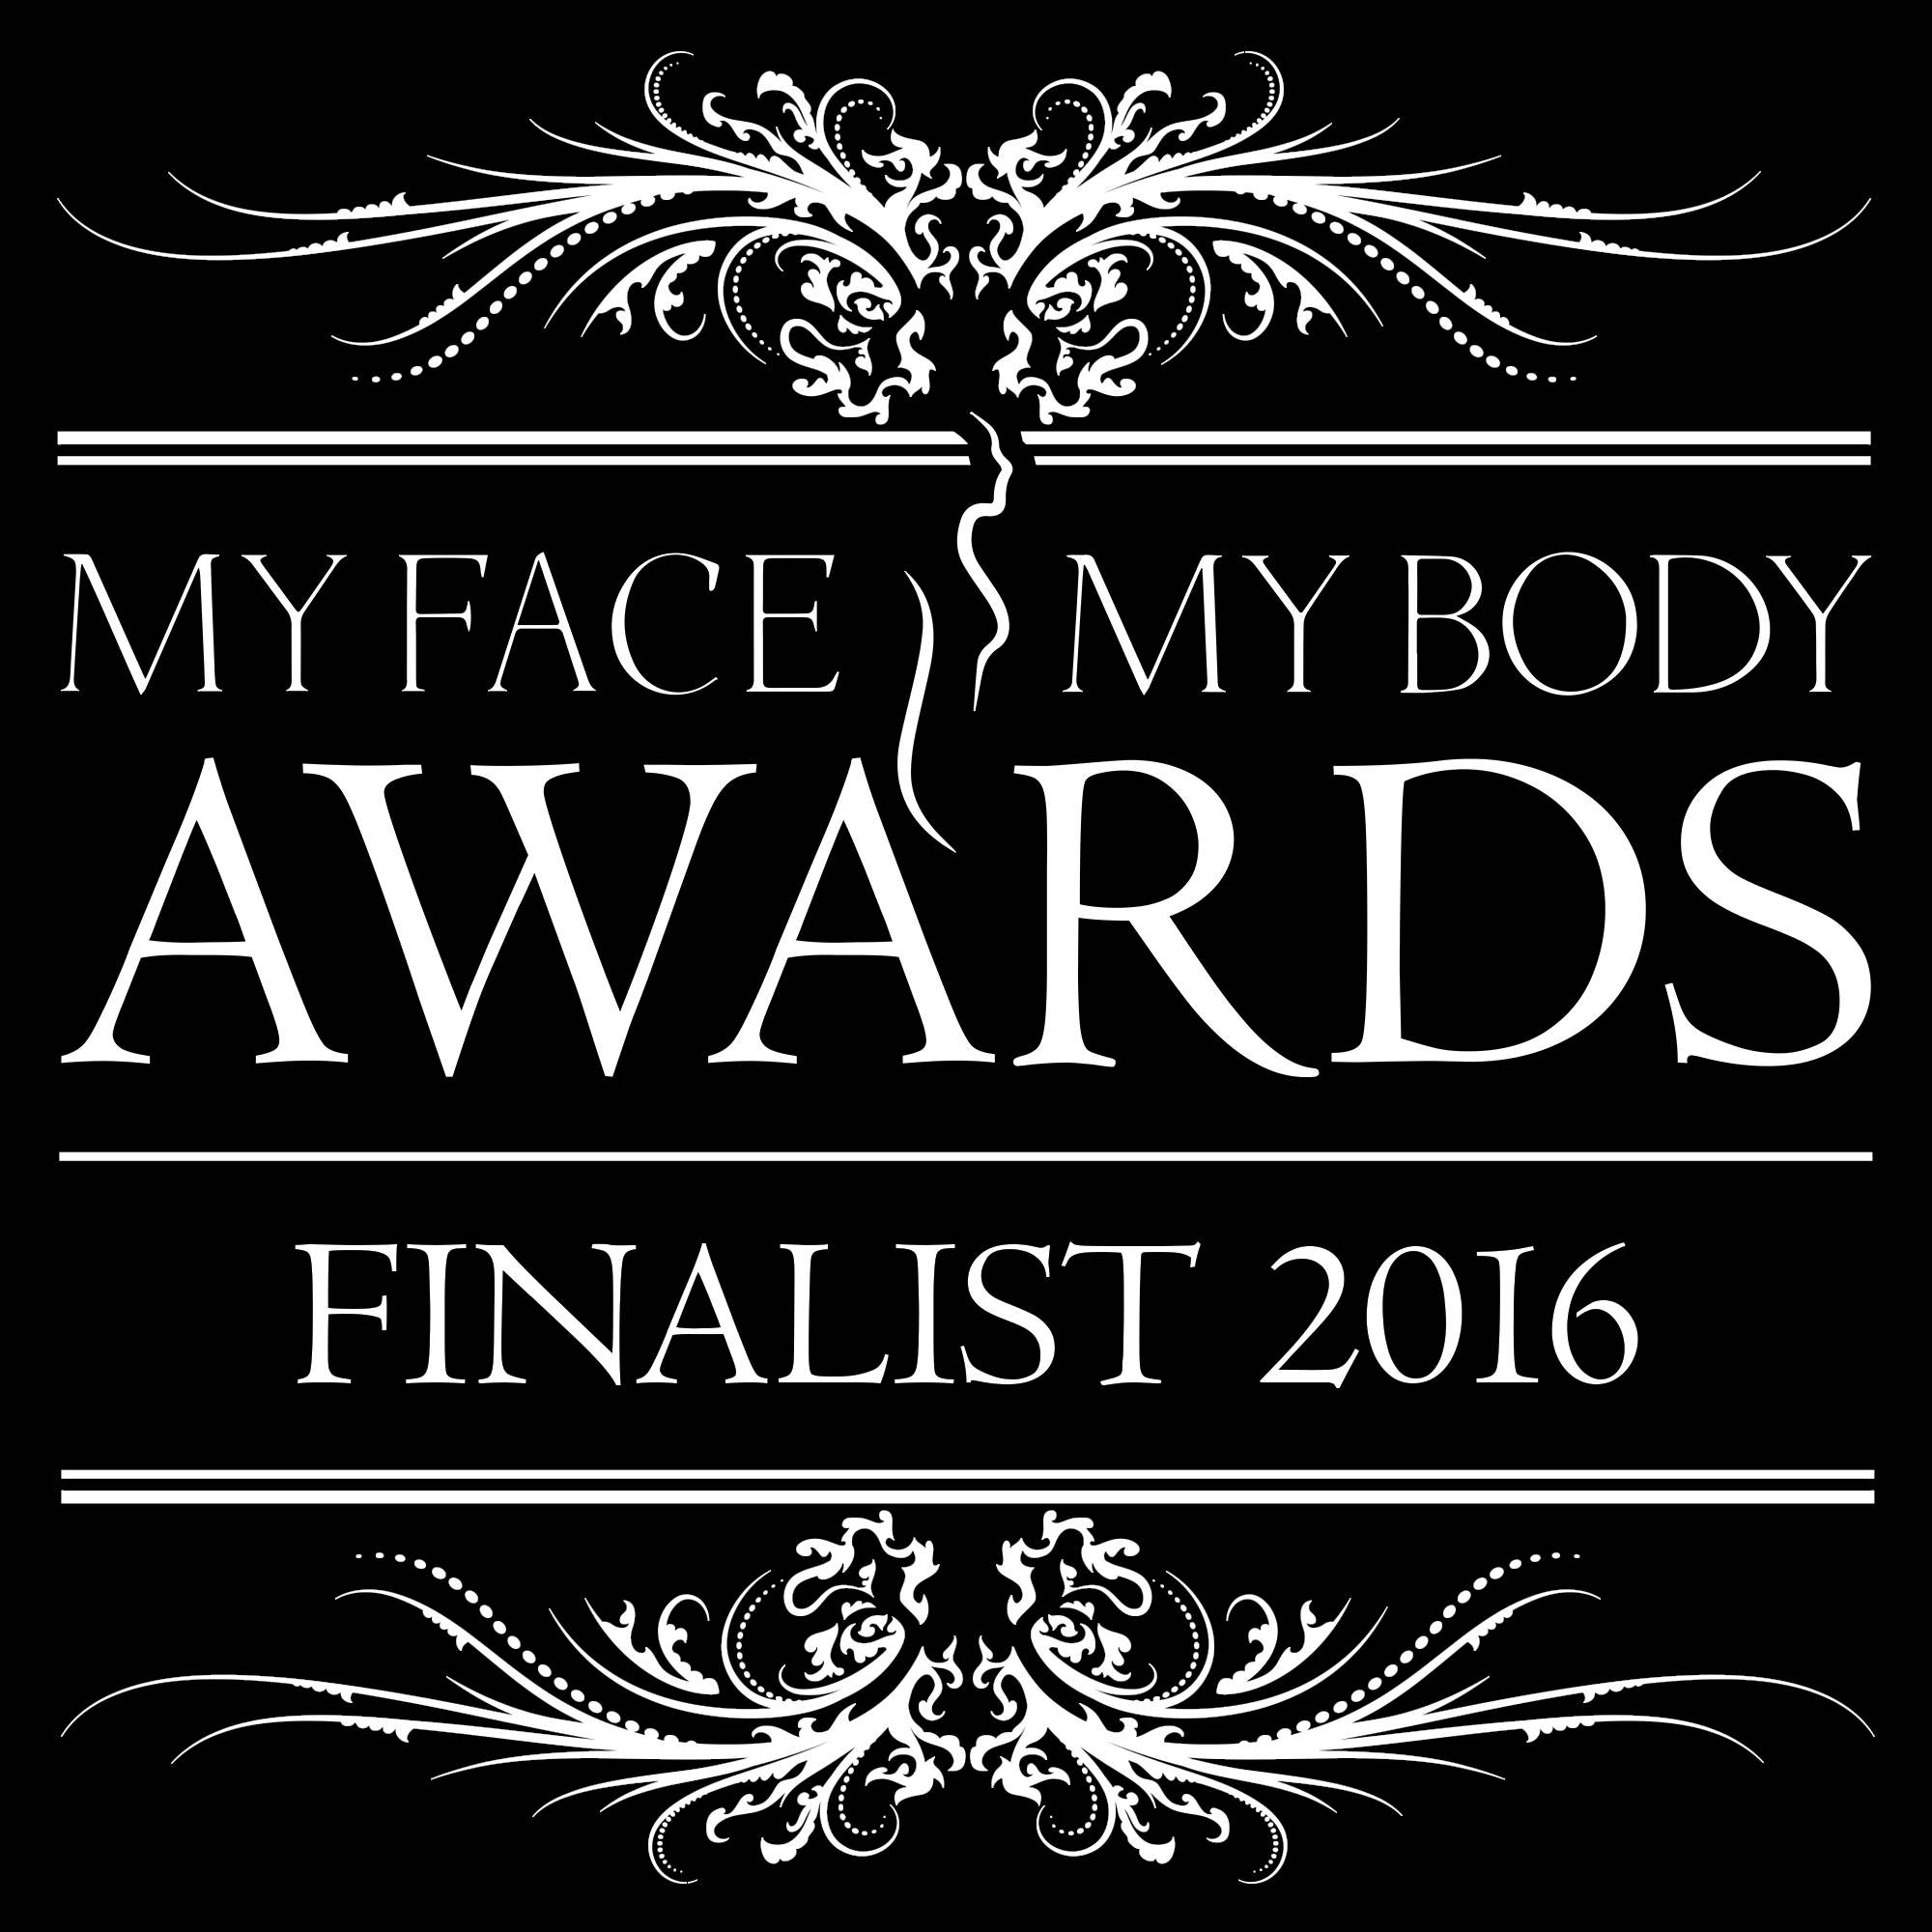 Clinetix have been selected as finalists for the My Face My Body Awards 2016